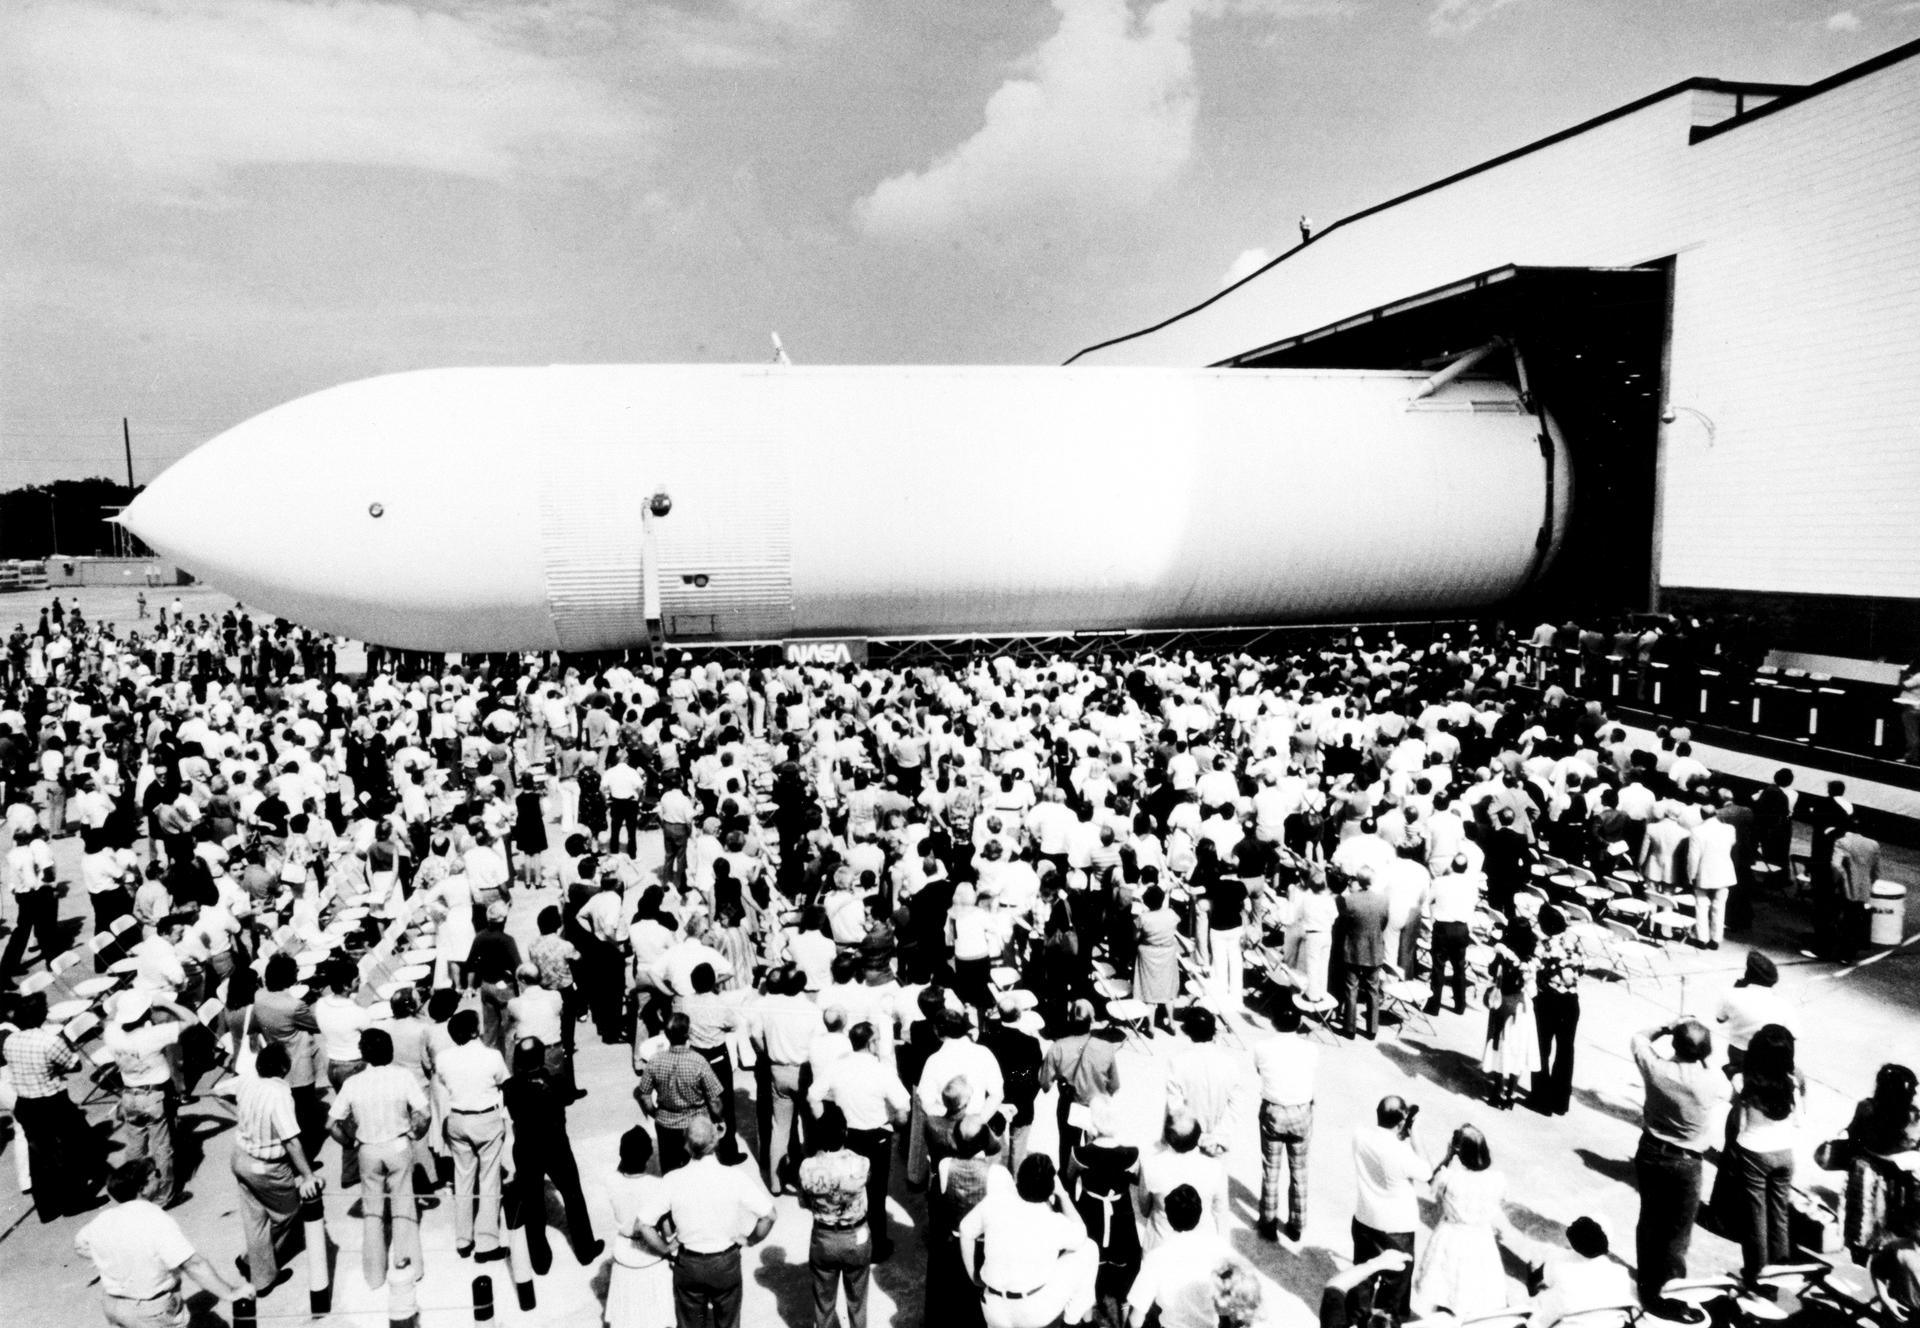 The space shuttle external tank for the Main Propulsion Test Article rolls off the assembly line September 9, 1977 at the Michoud Assembly Facility in New Orleans.